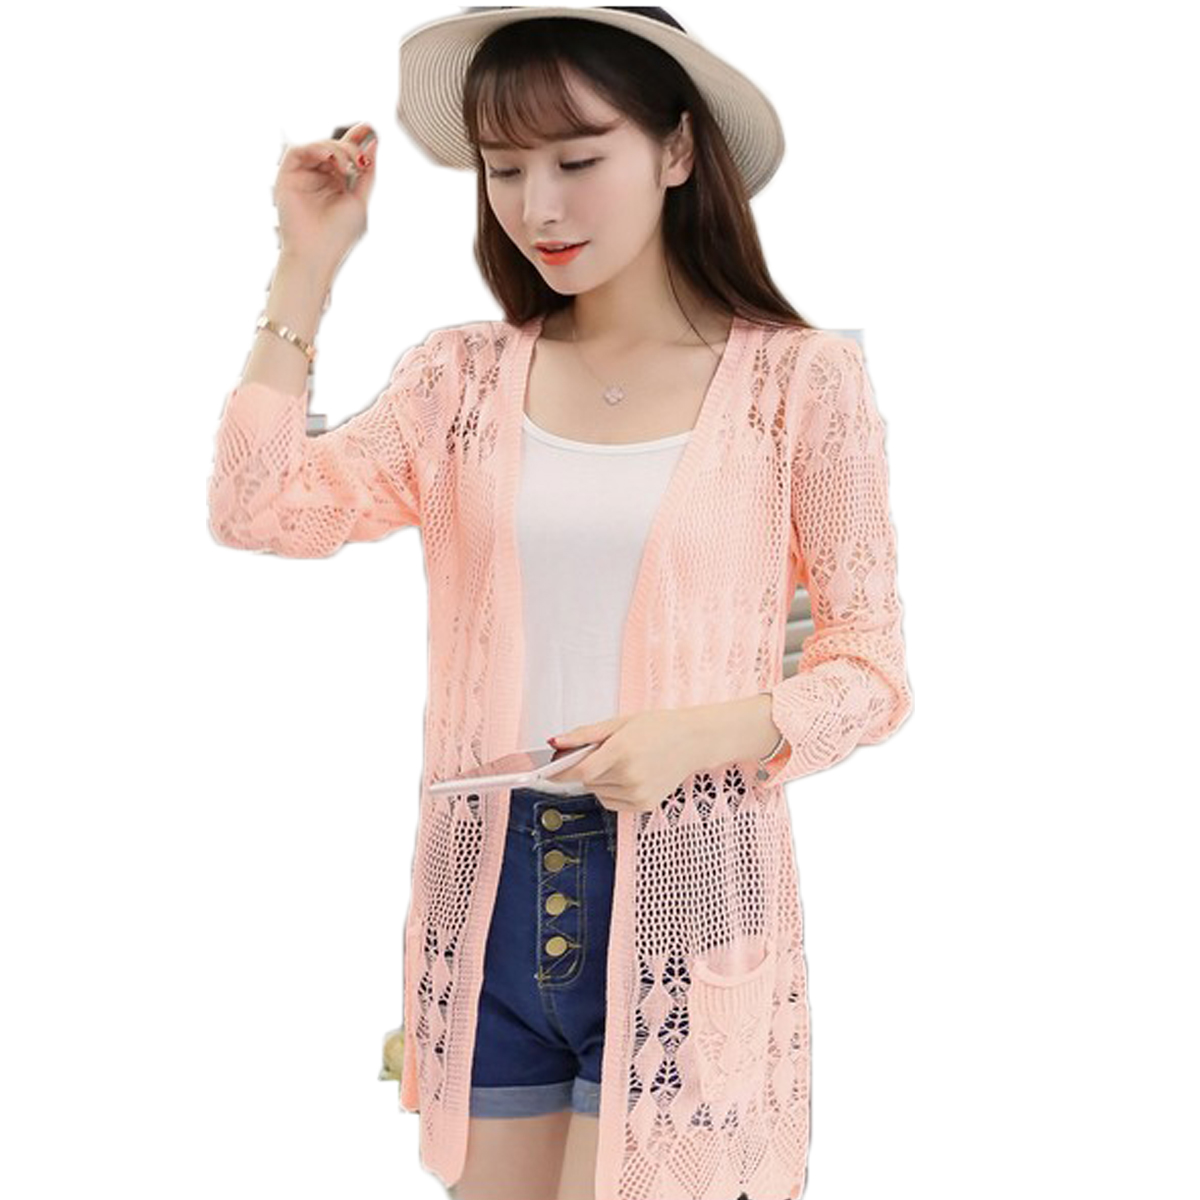 nuevo estilo dbede 77af8 US $7.28 48% OFF|2017 Ladies Crochet Tops Summer Hollow Out Knitted  Sweaters Cardigan Rebecas Mujer Fashion Women Beach Cardigan Spring  Autumn-in ...